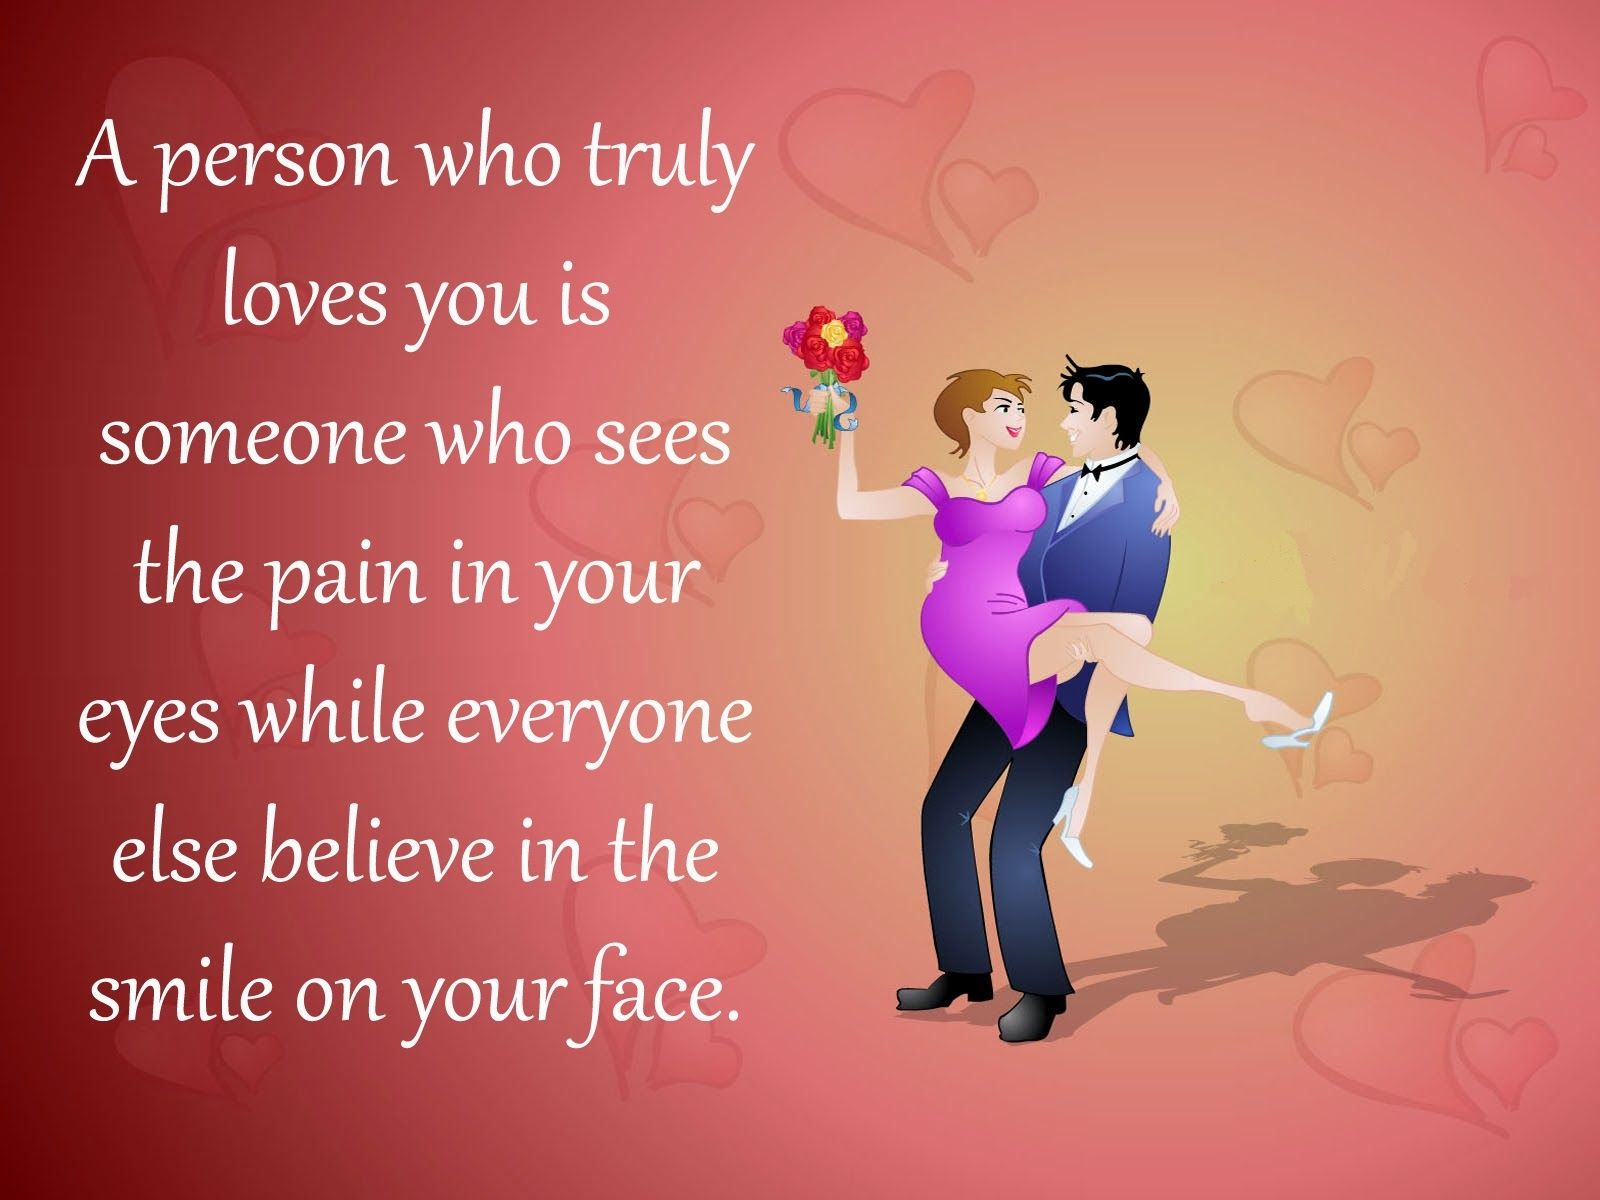 happy valentines day 2018 quotes wishes sms messages images - Valentine Day Message For Wife